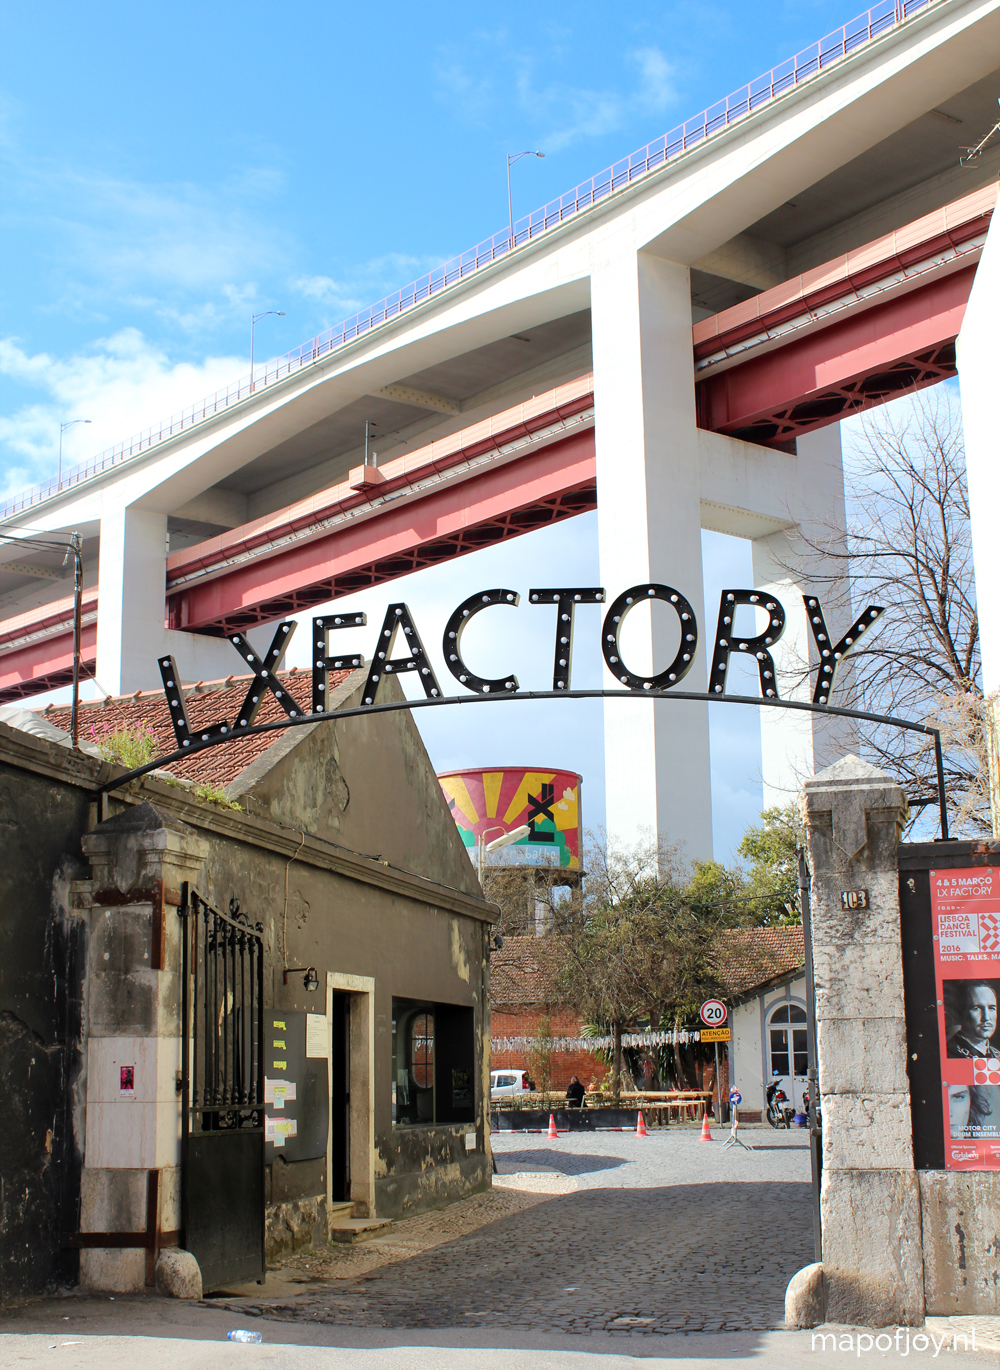 LX Factory, hotspot, Lisbob, Portugal - Map of Joy